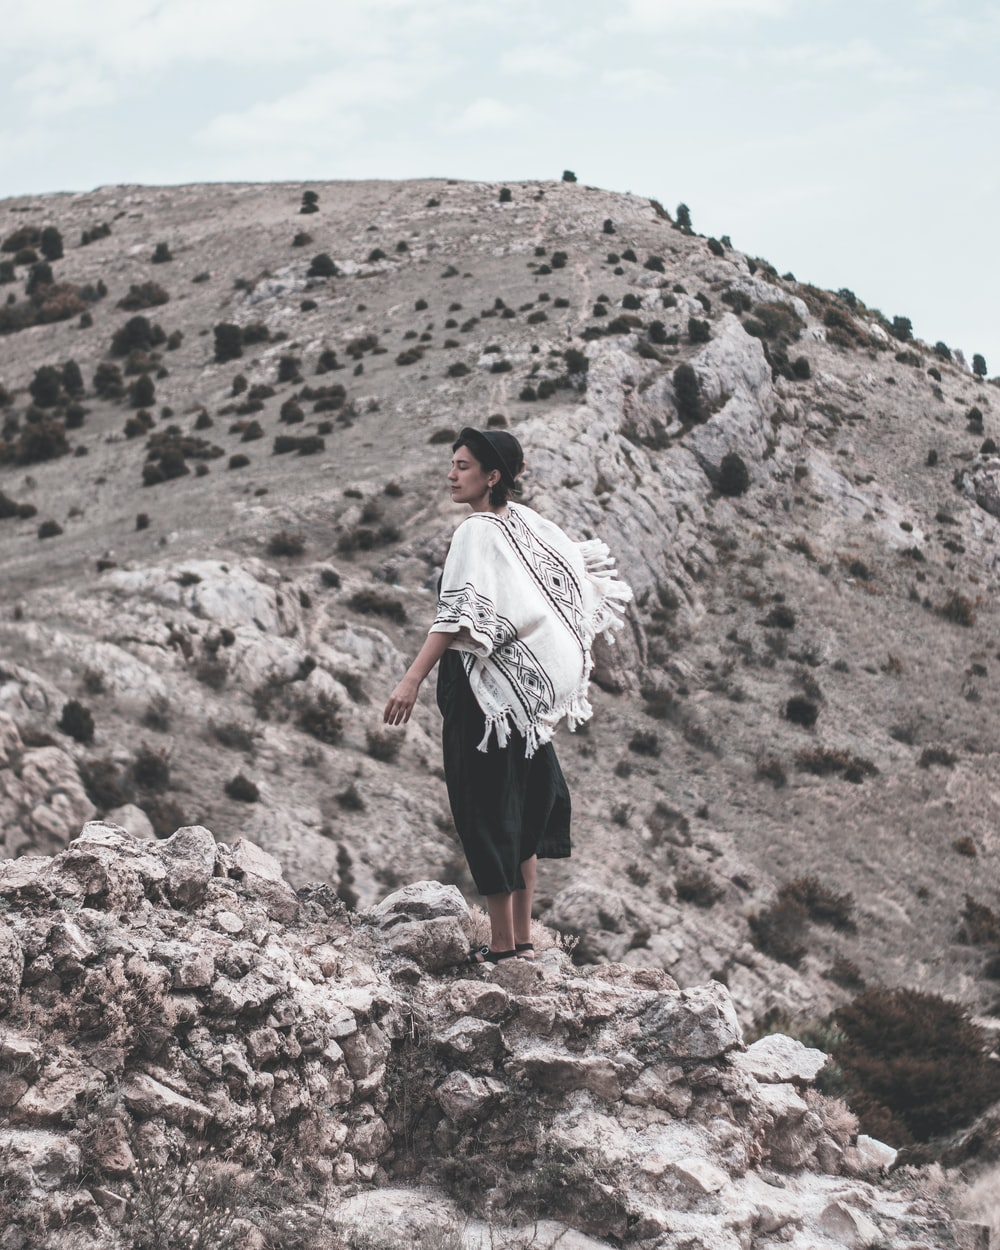 person in white top standing on mountain during daytime